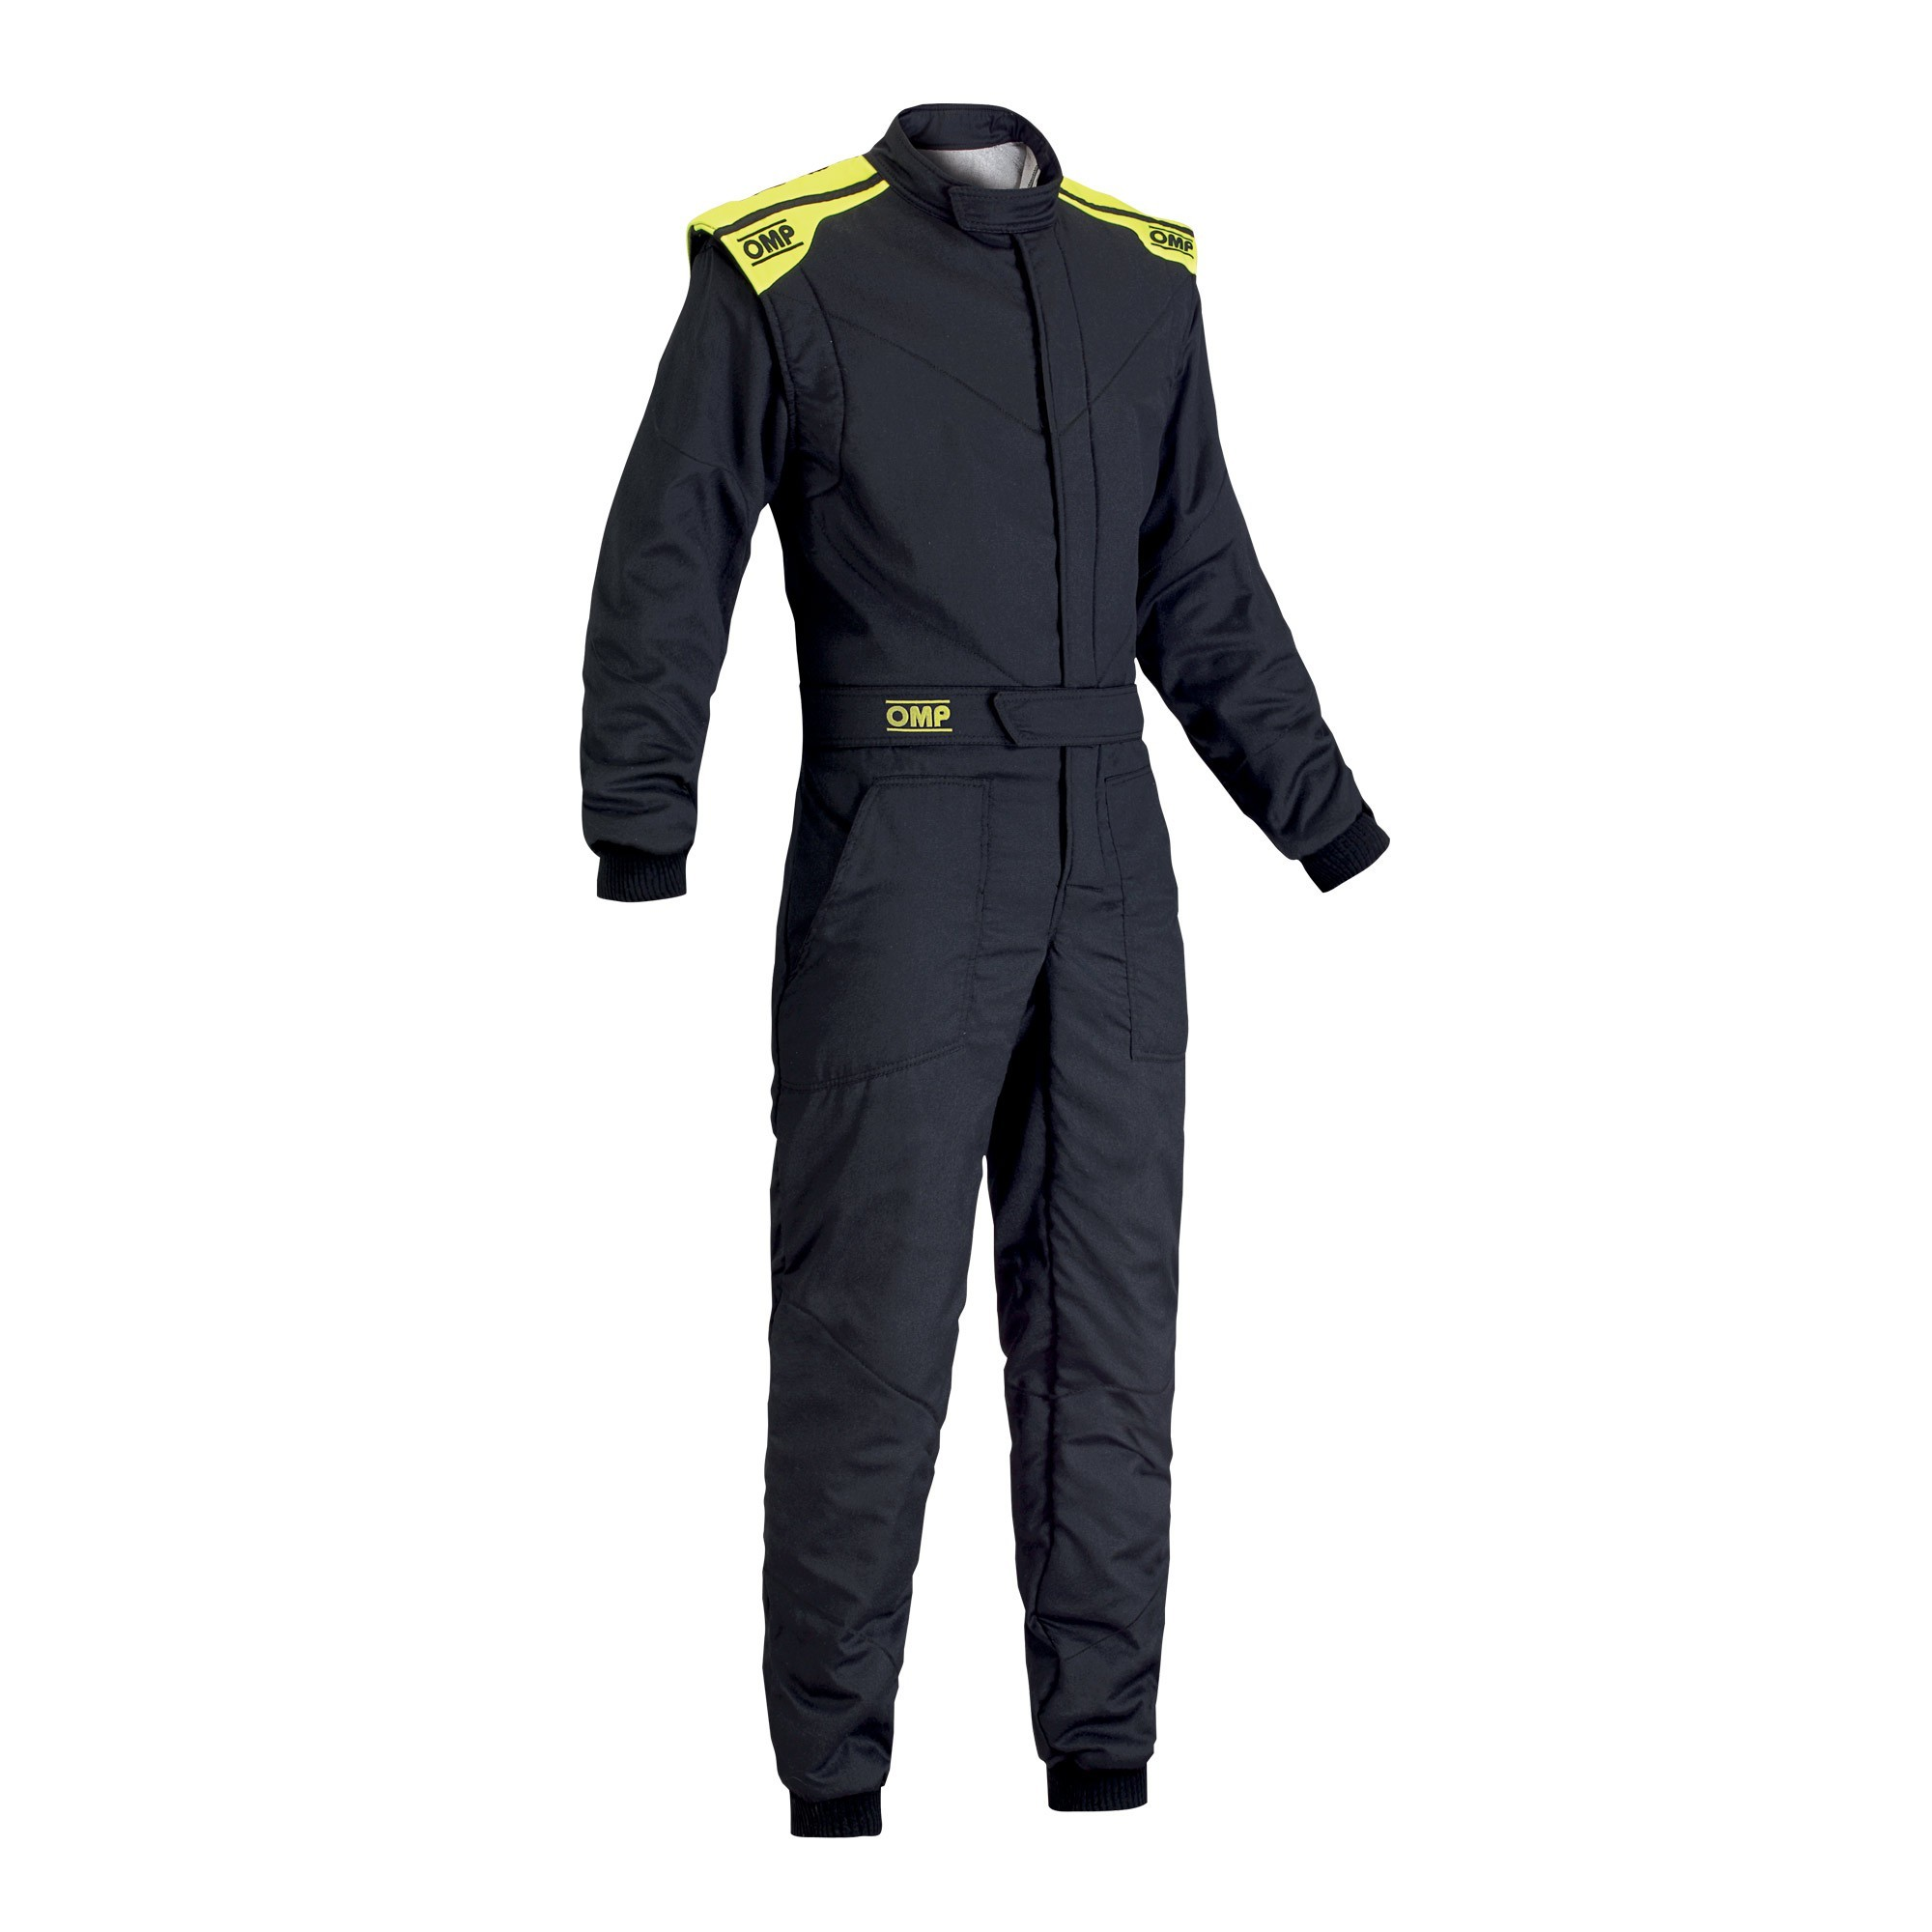 FIRST-S Suit